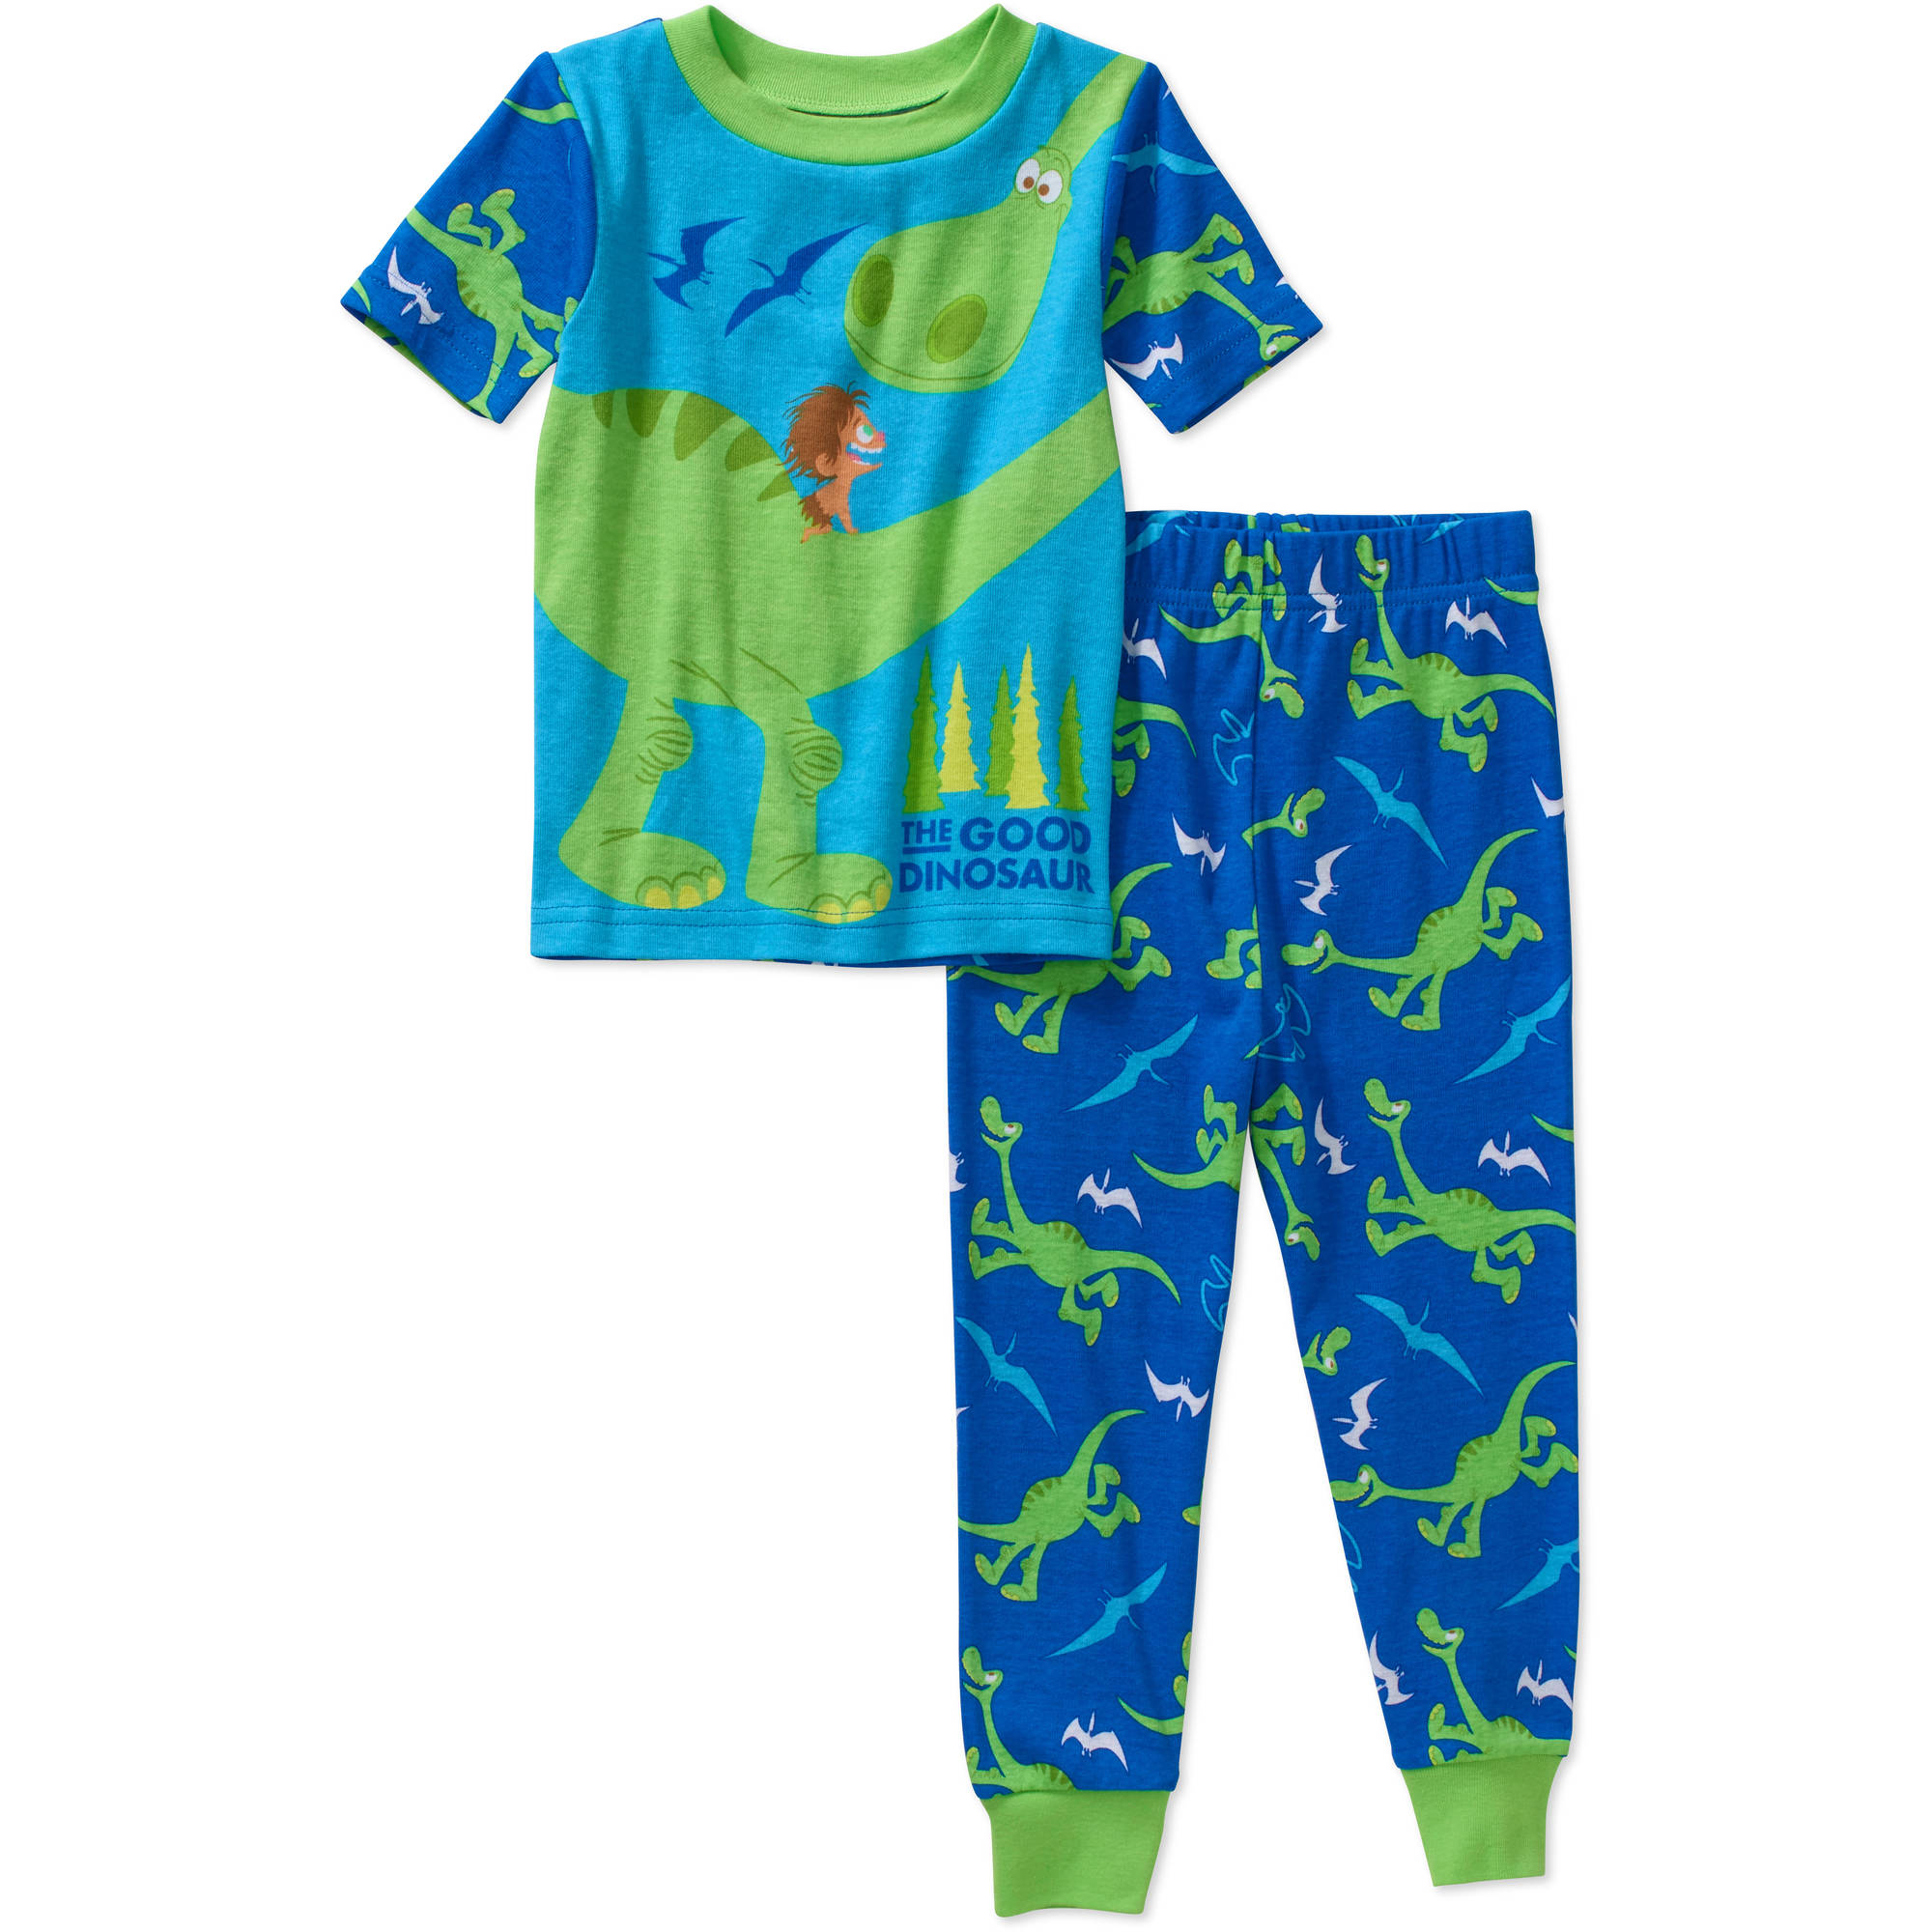 The Good Dinosaur Toddler Boys' Licensed Cotton Pajama Sleepwear Set